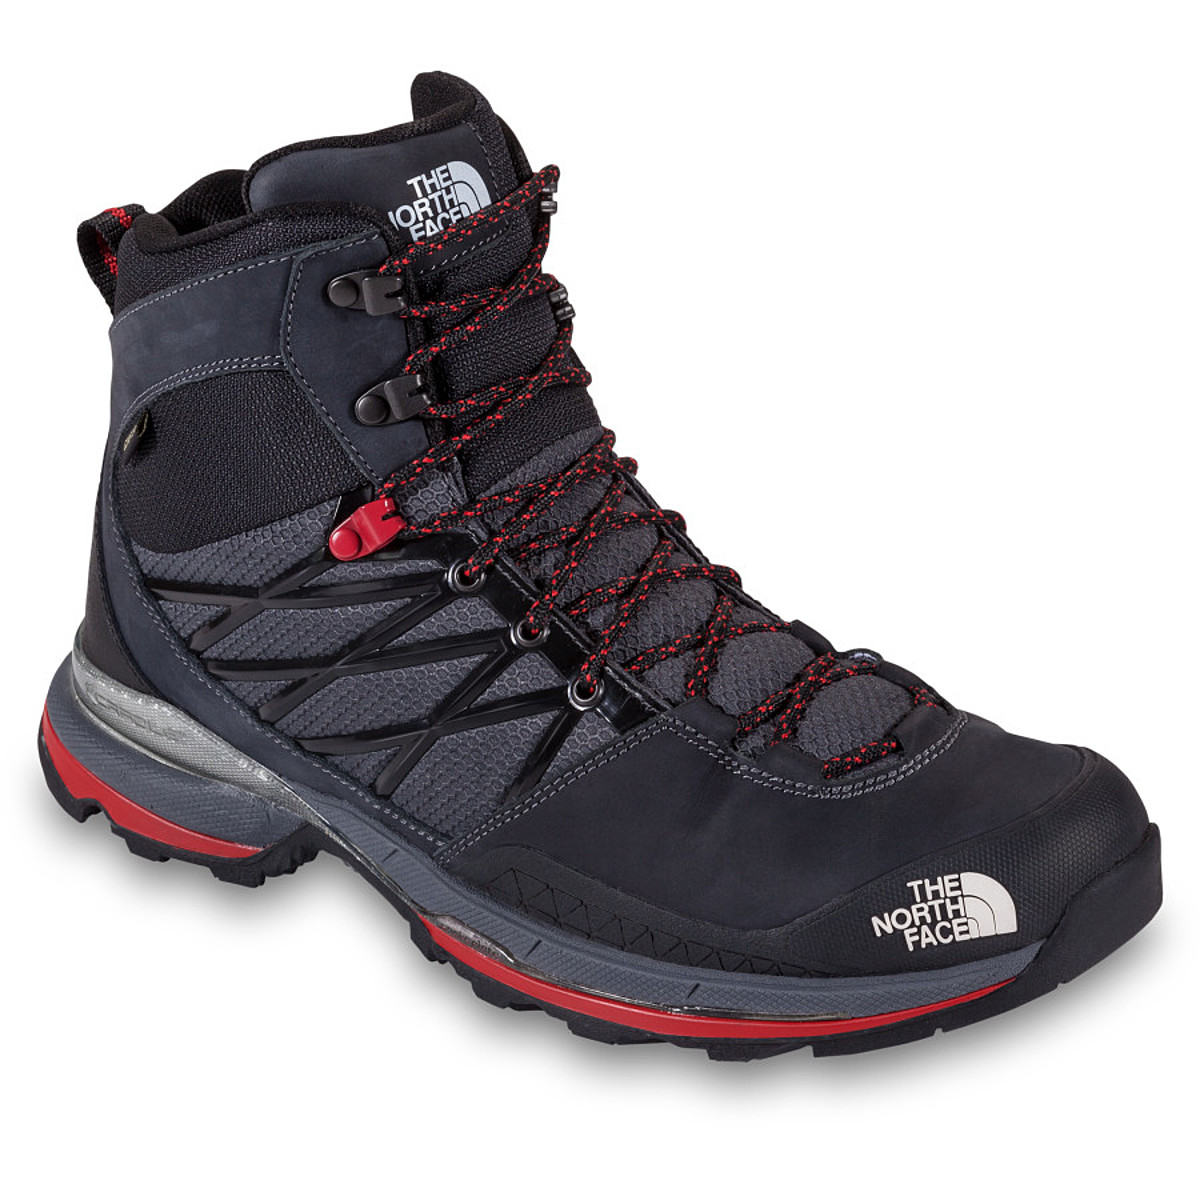 The North Face Verbera Lite Mid GTX